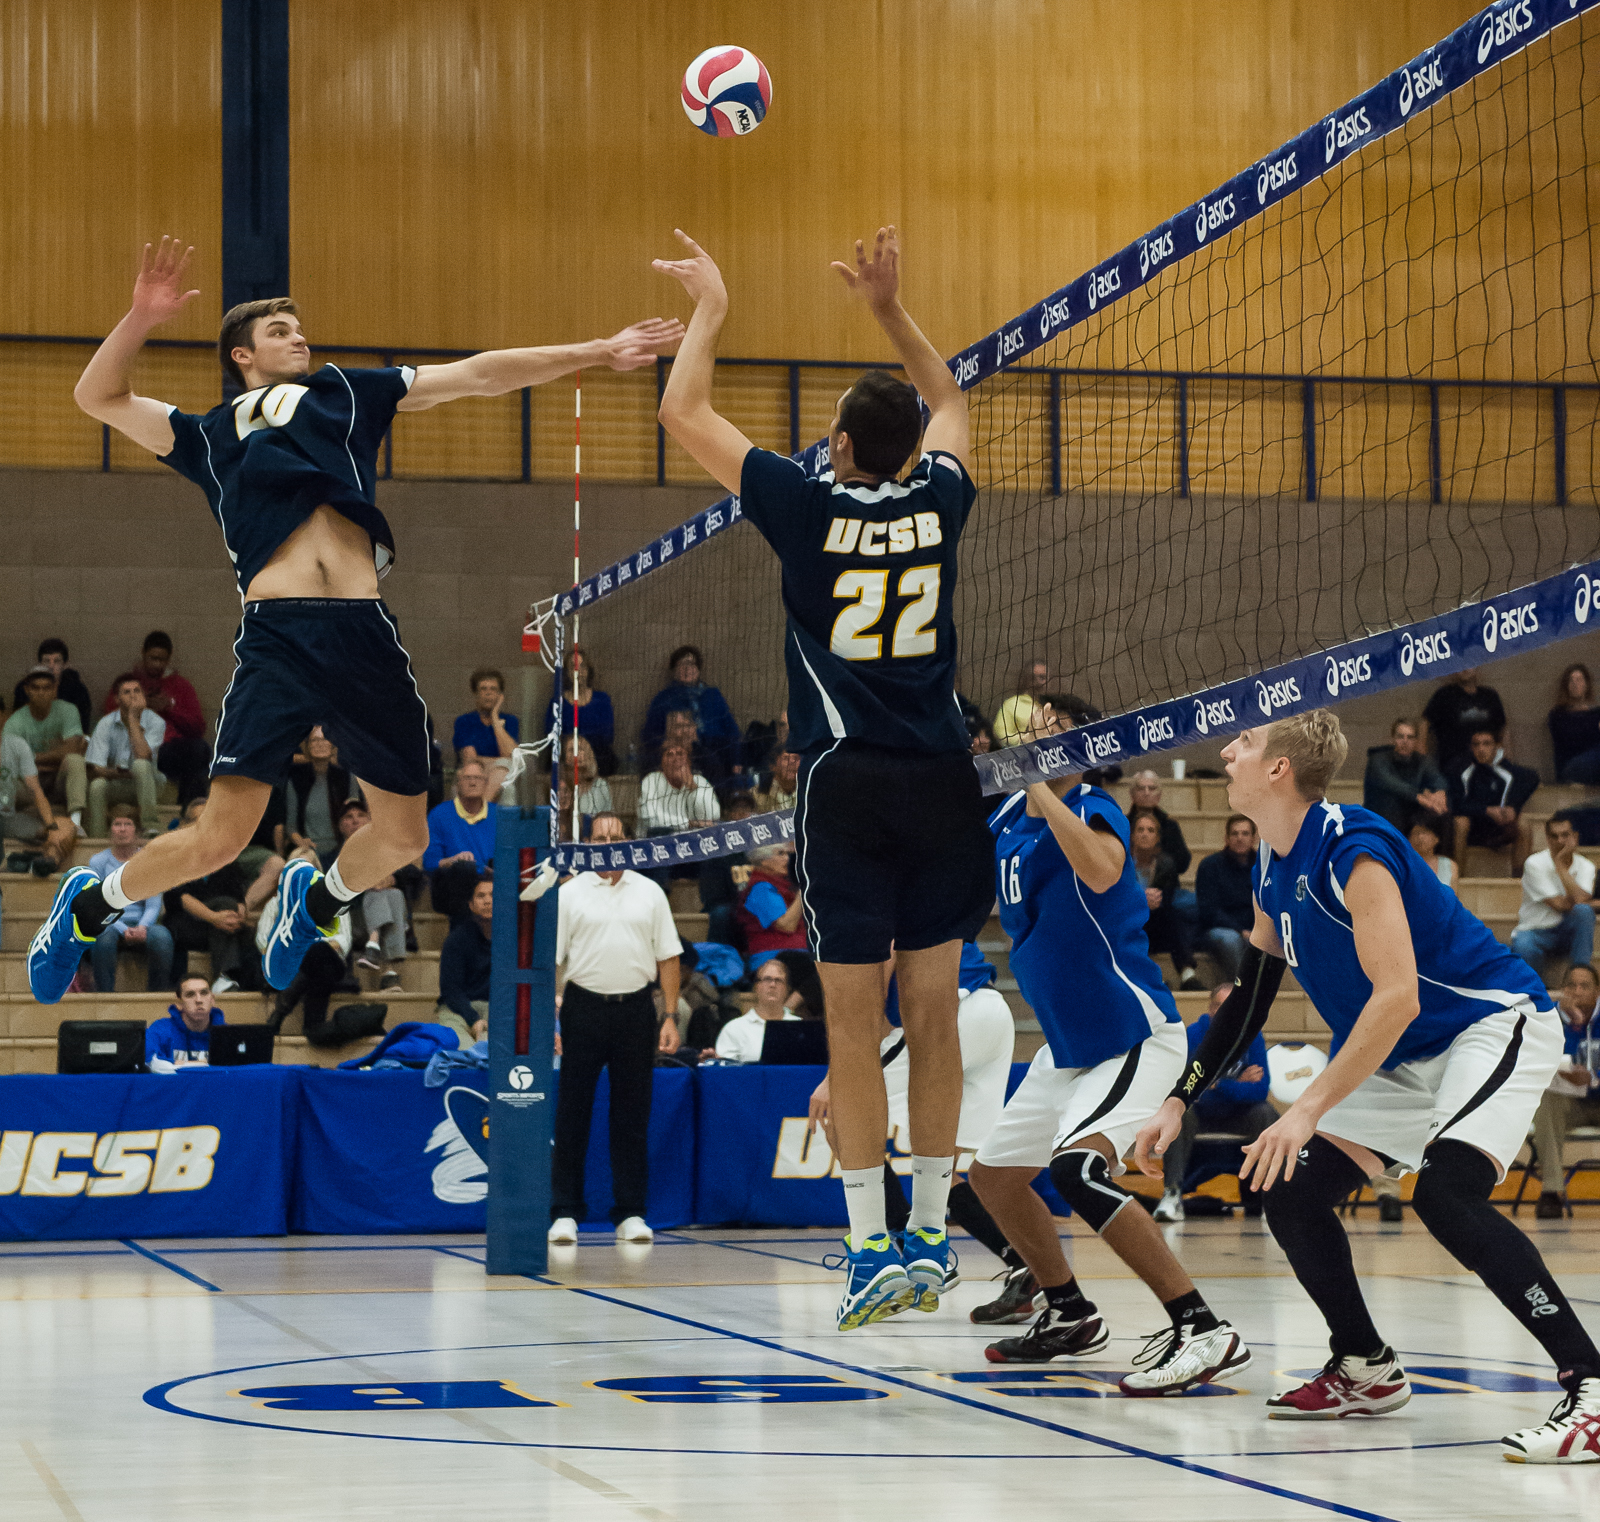 Middle hitter Ryan Hardy prepares to swing off of a set from teammate Jonah Seif. Kenneth Song/Daily Nexus